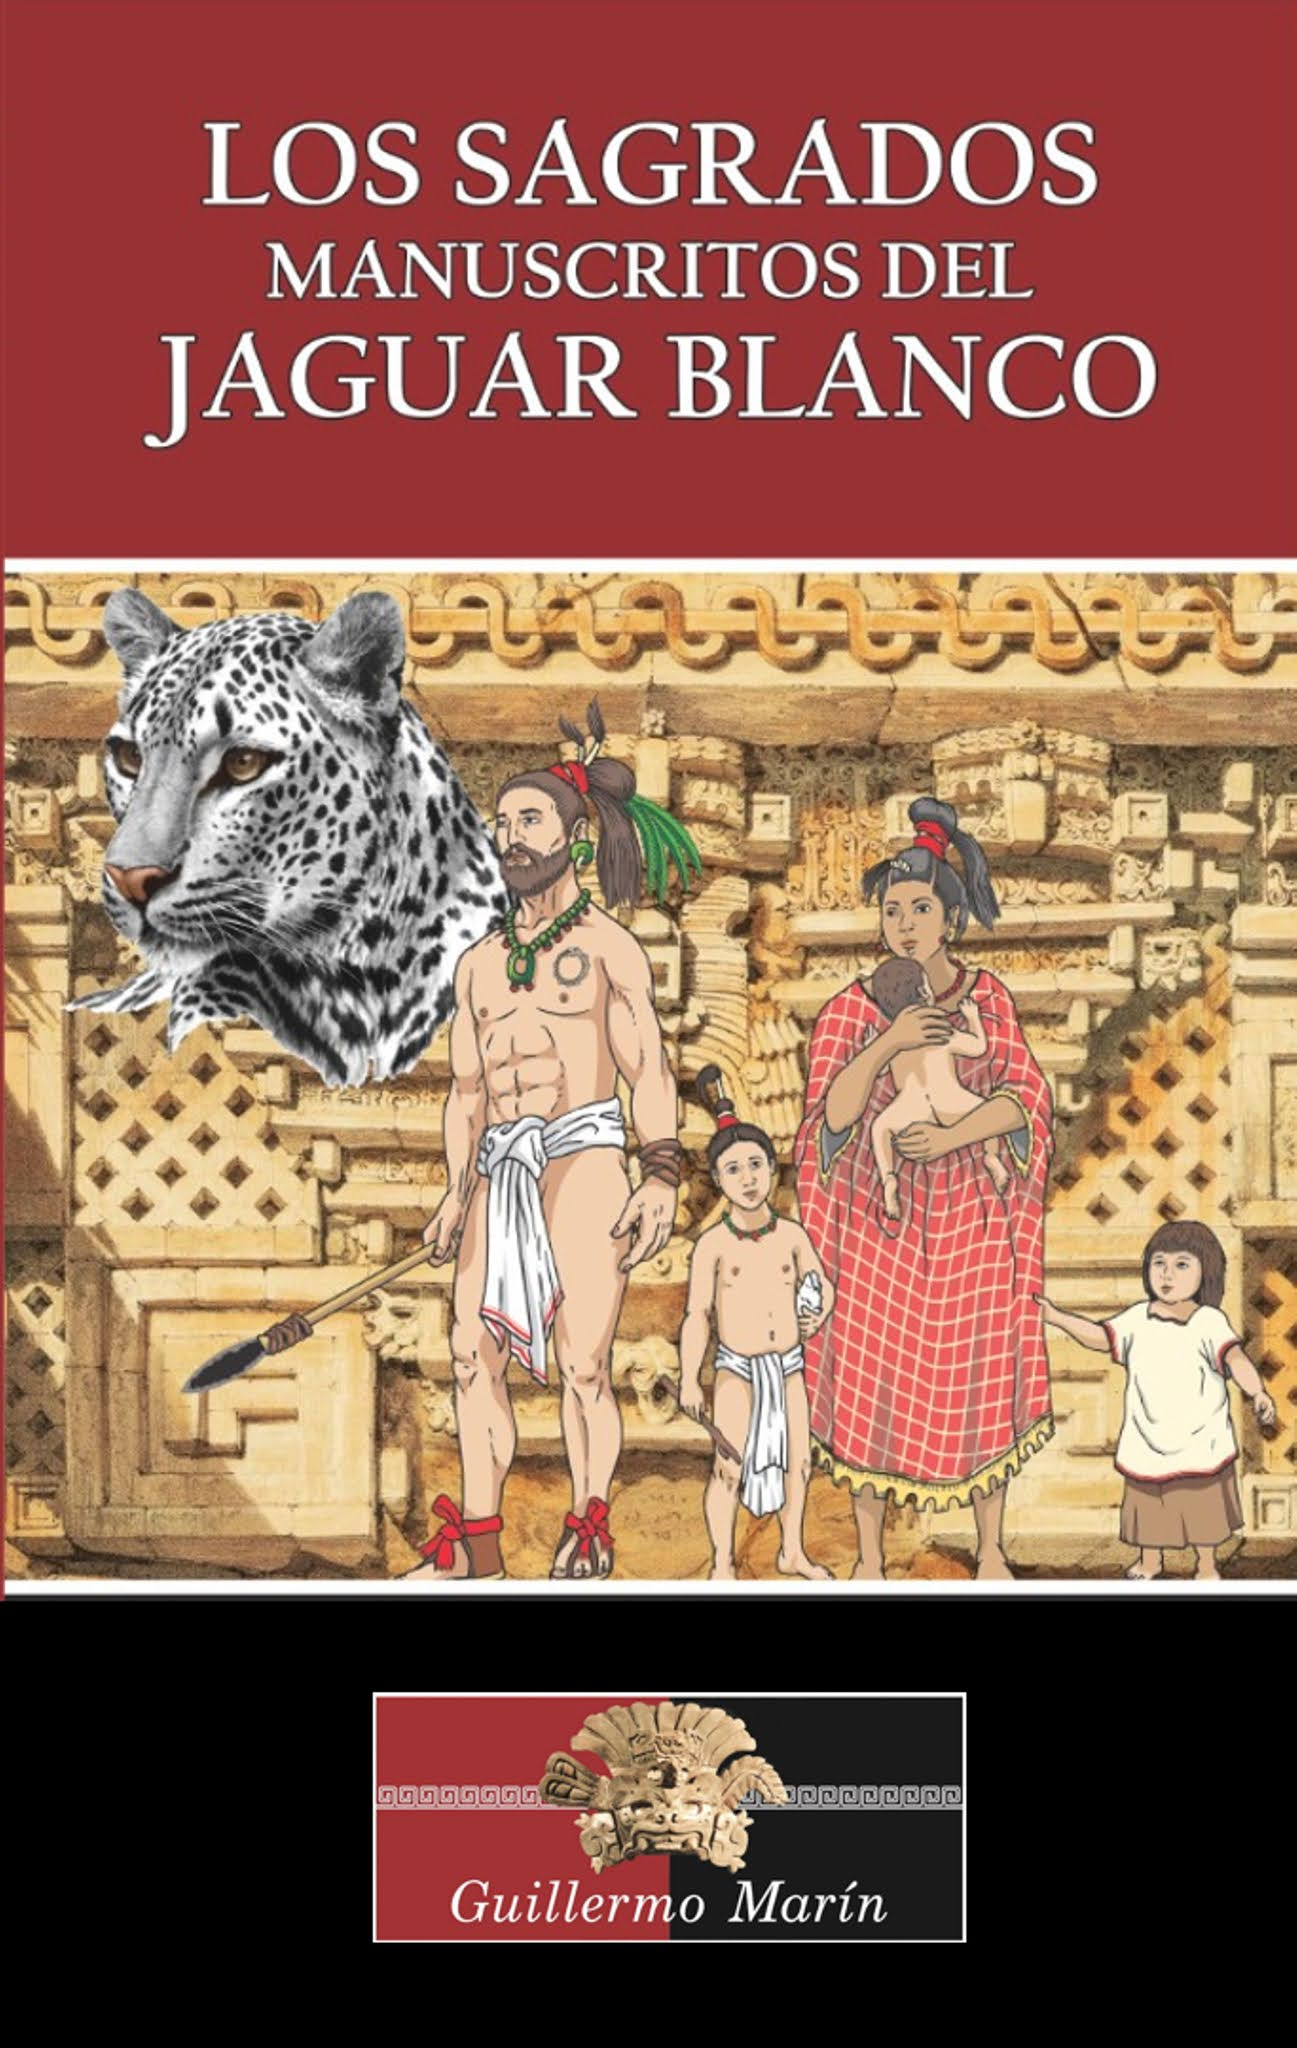 LOS SAGRADOS MANUSCRITOS DEL JAGUAR BLANCO. Novela